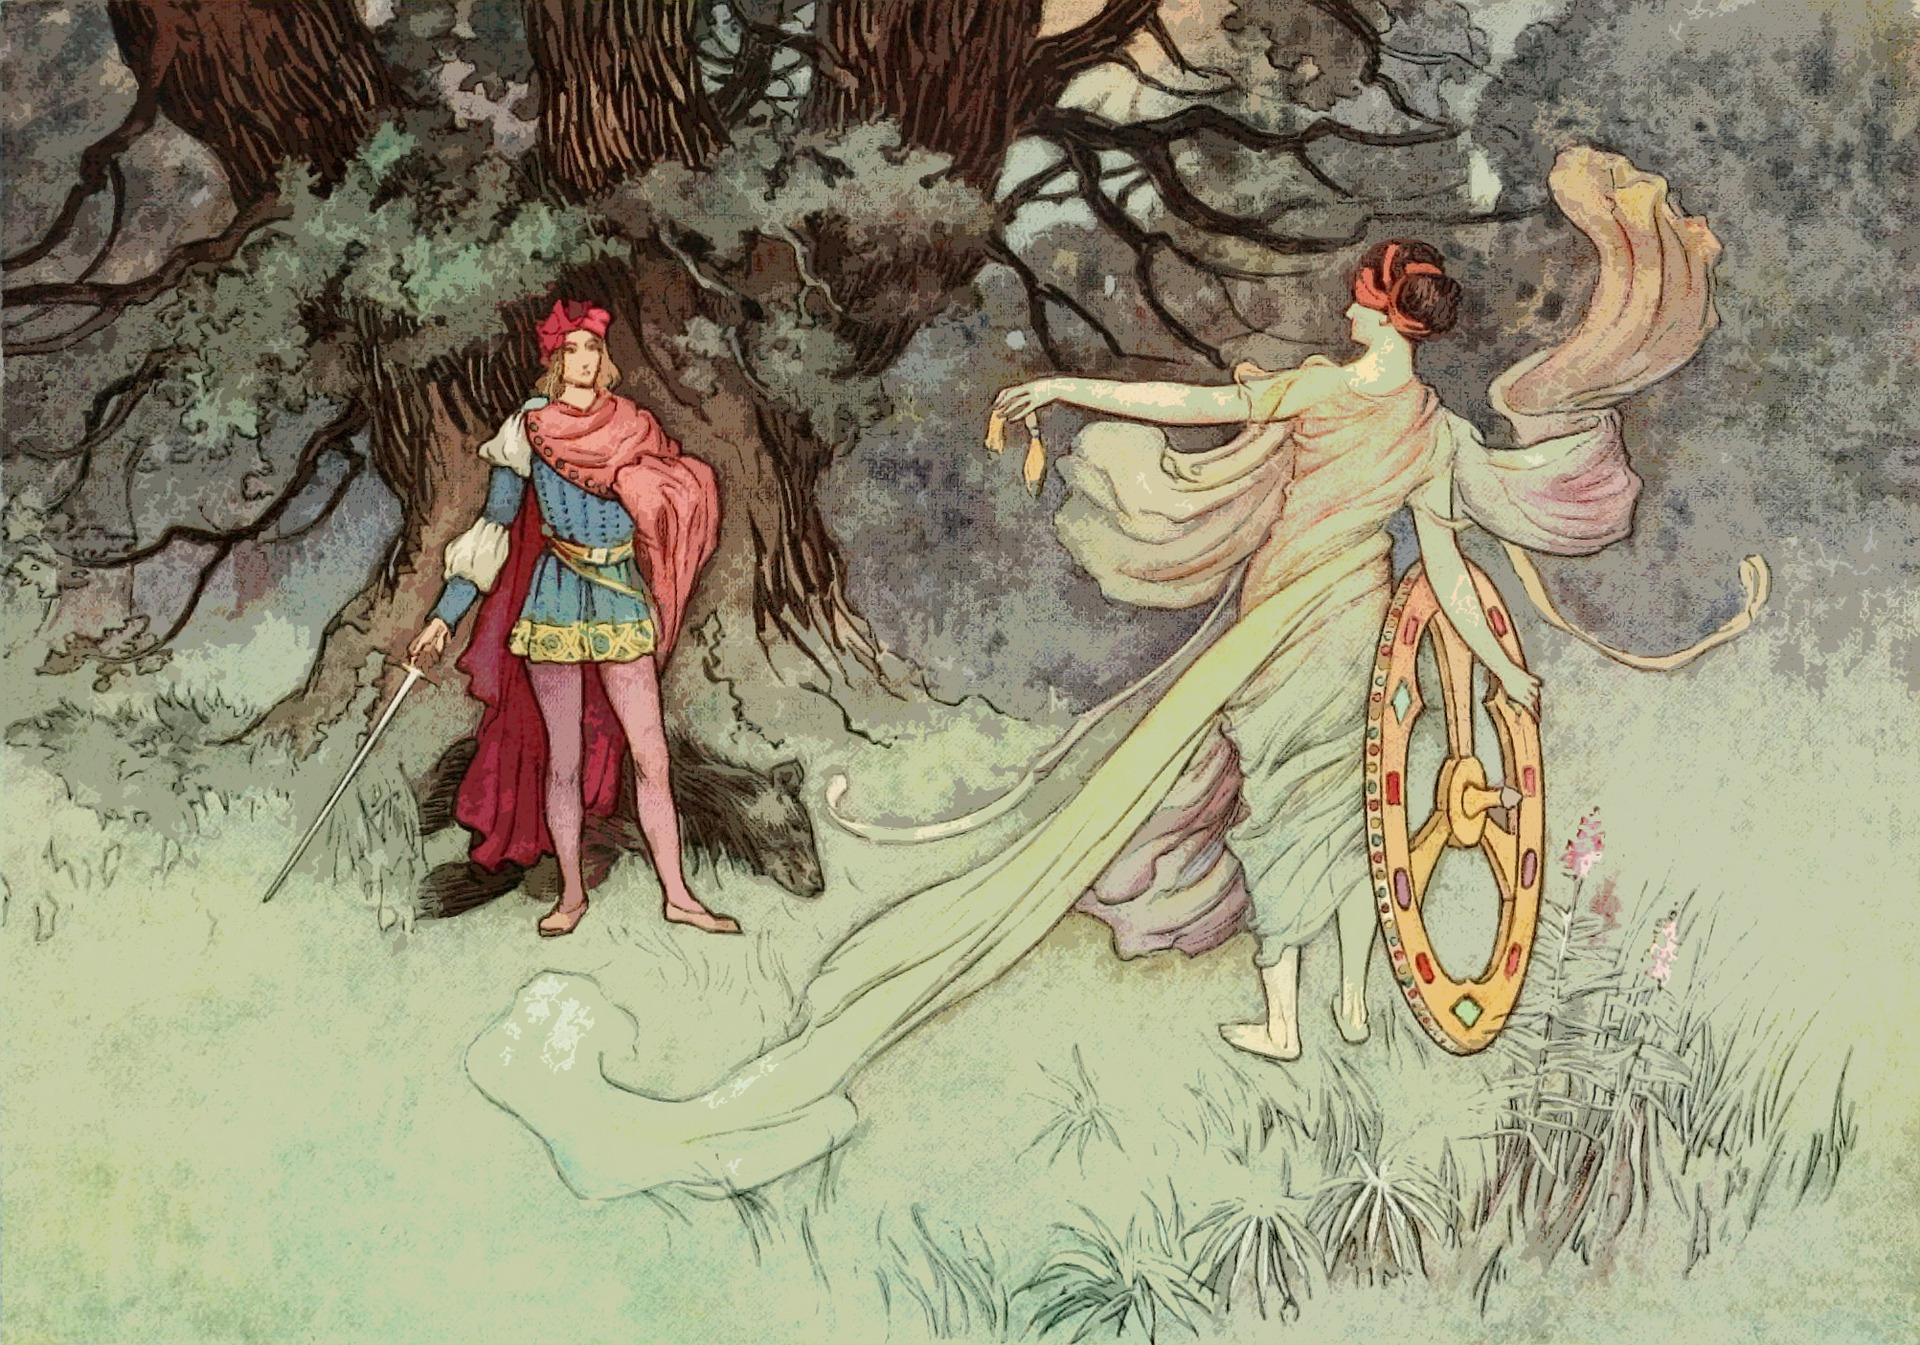 Illustration of another fairy tale esque scene: a man stands before a glarned tree, and a woman (perhaps a spirit) gestures to him with her clothes whirling around